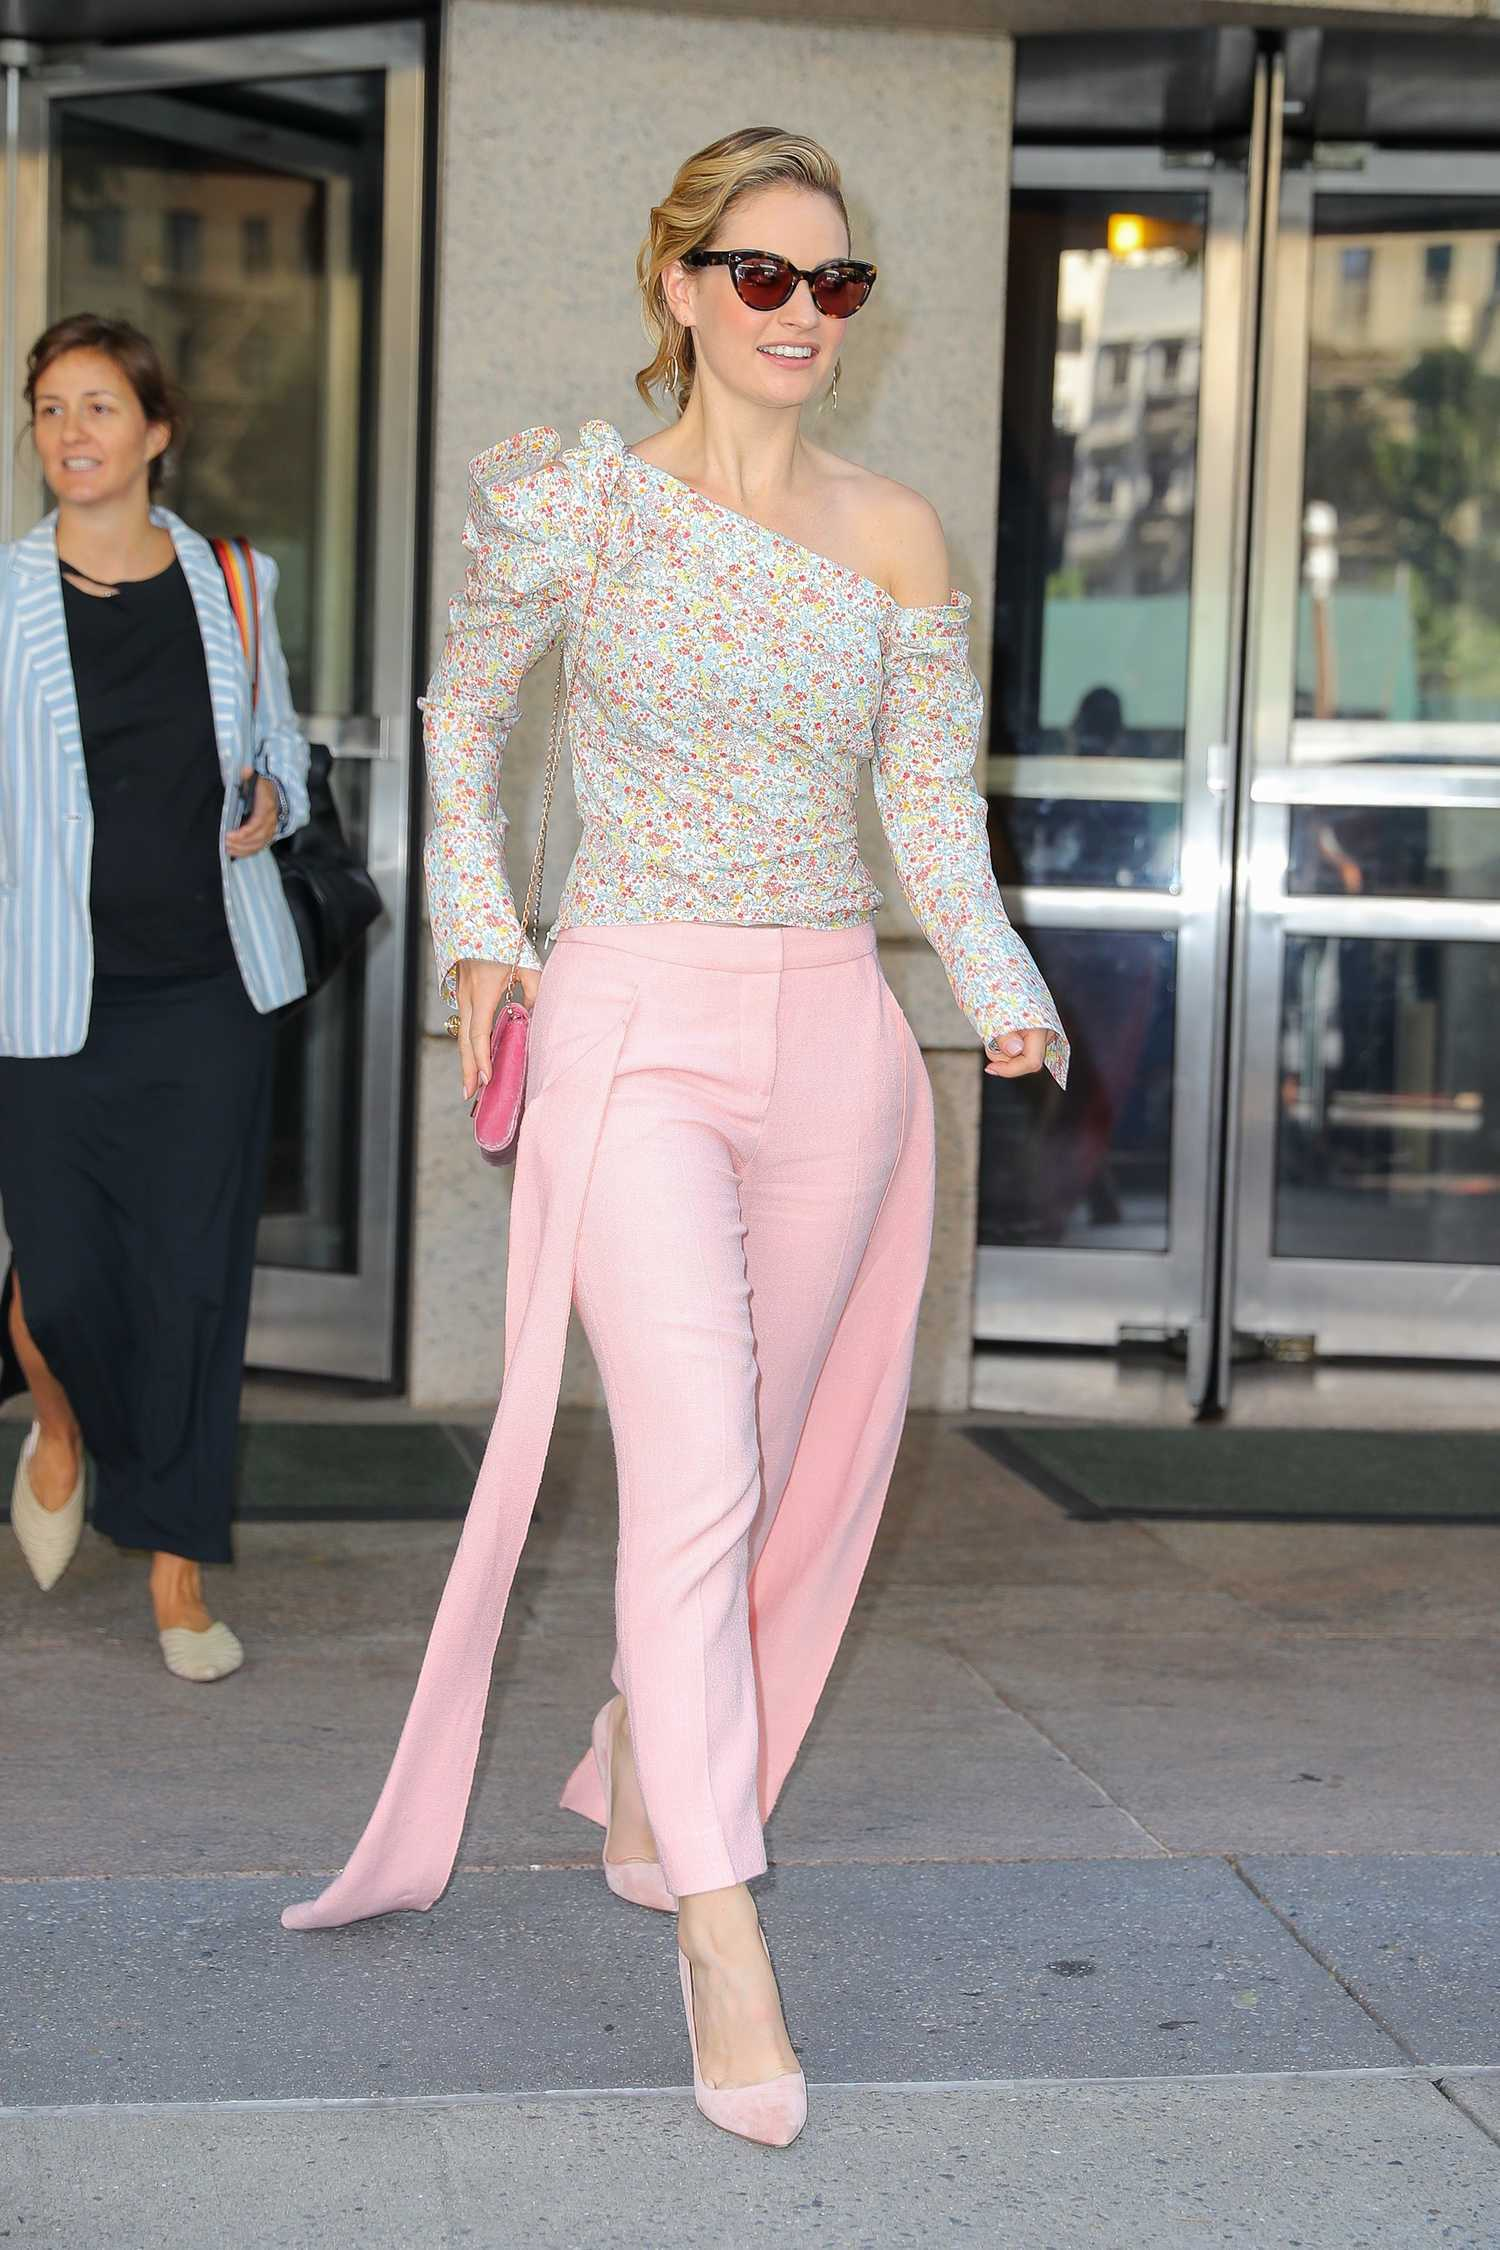 Lily James Wears A Pink Pants As She Leaves The Abc